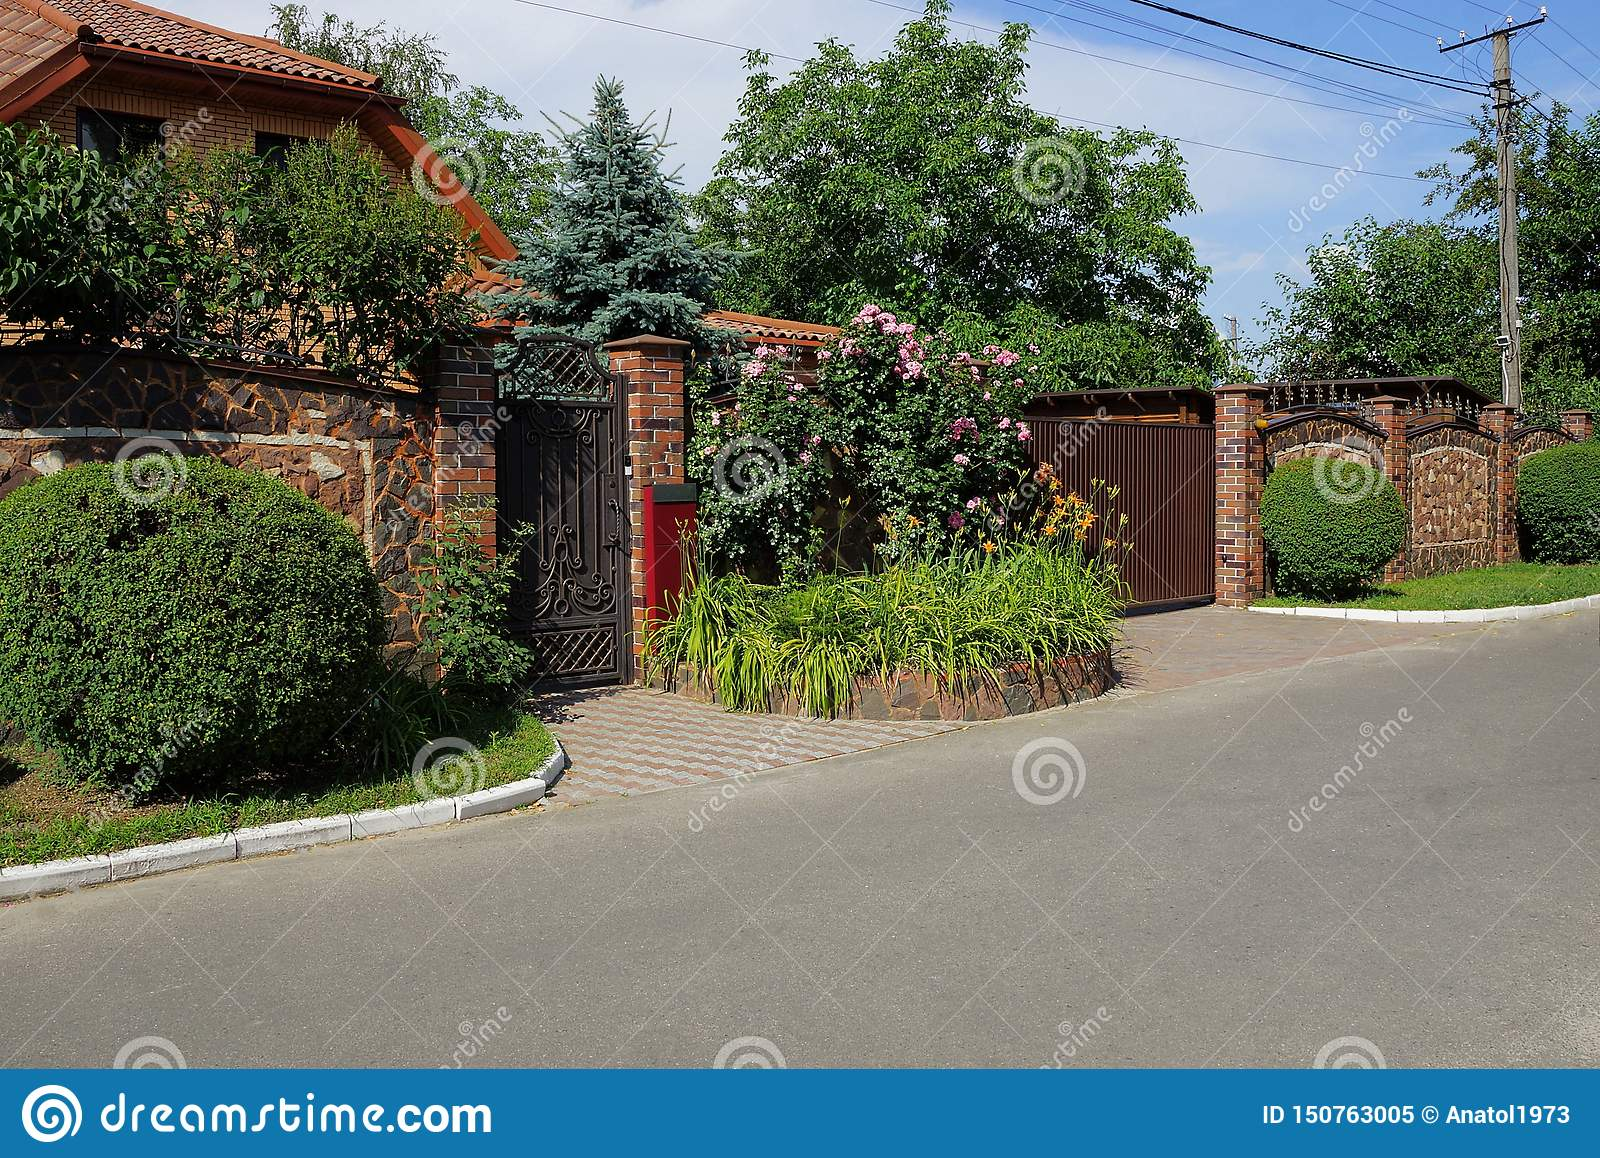 Brown Fence And Gate On The Street With Green Vegetation And Flower Bed Stock Image Image Of Modern Green 150763005